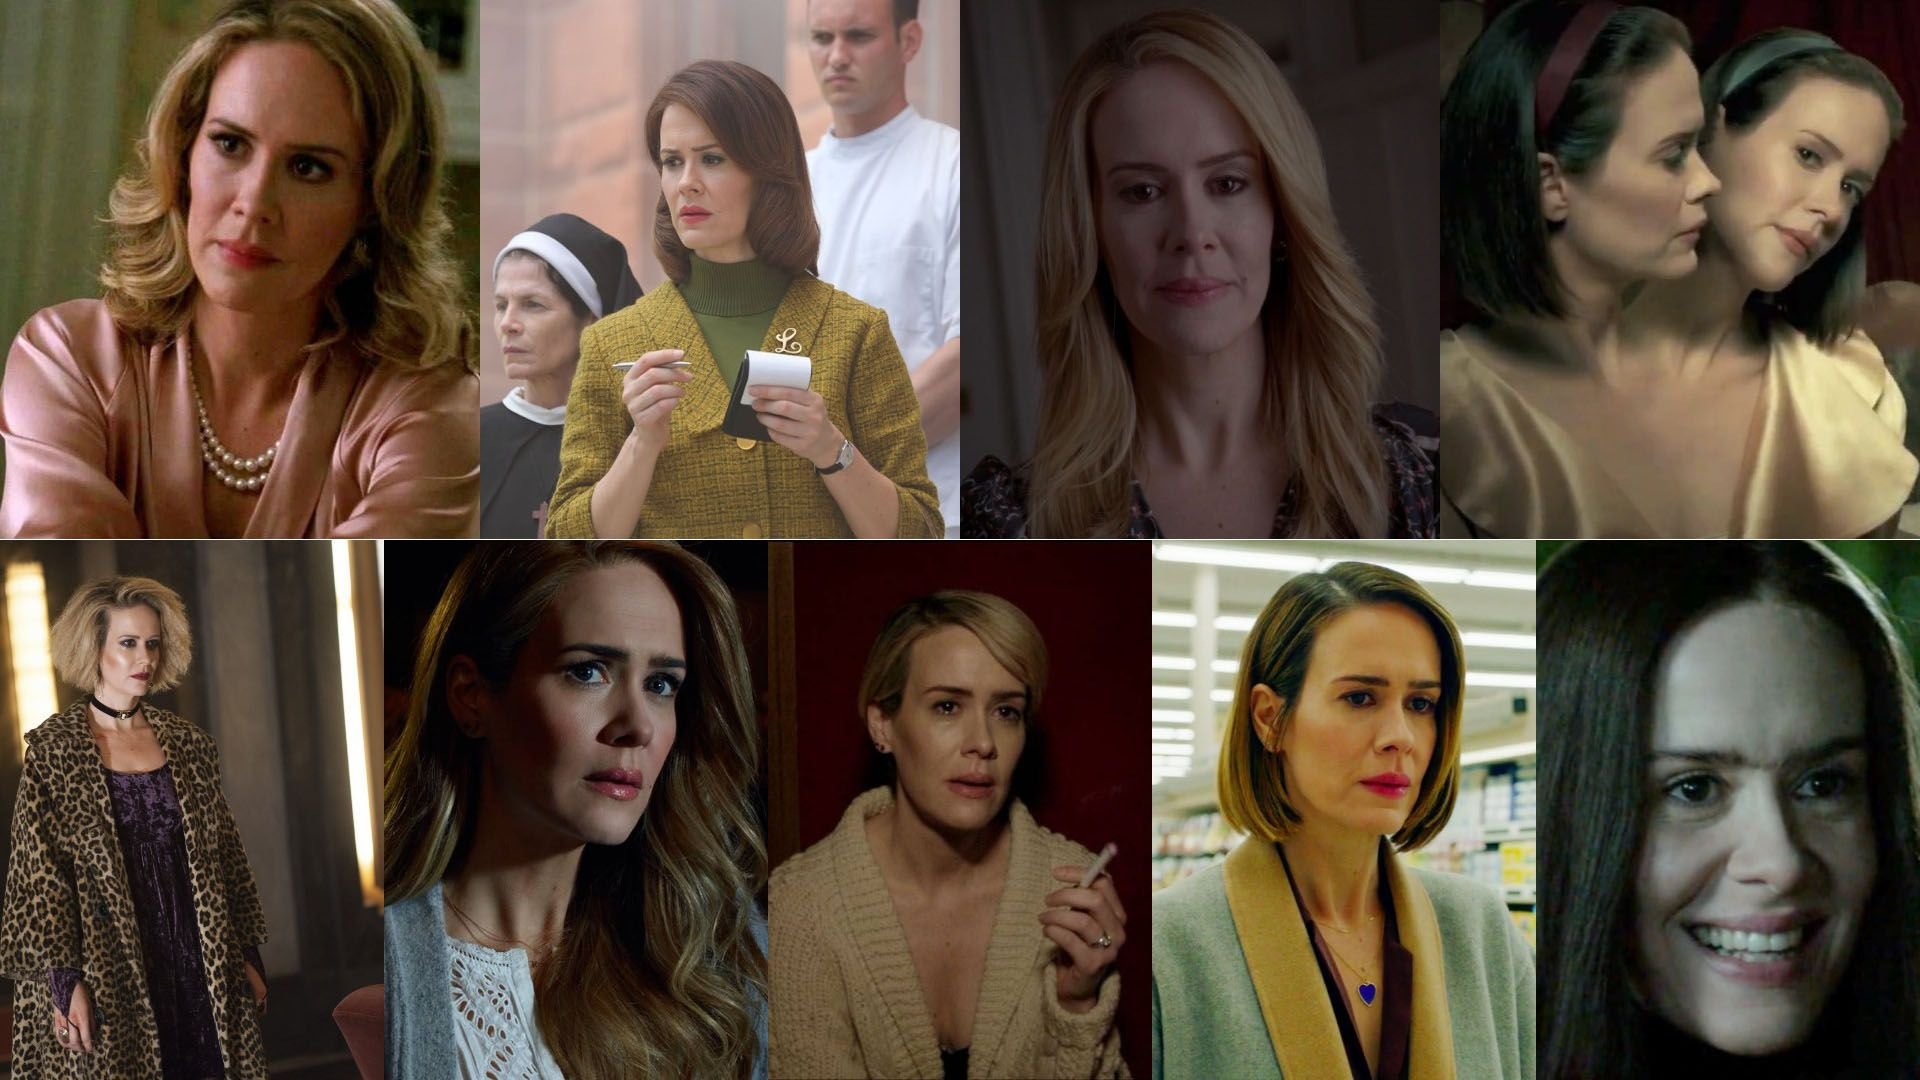 Sarah Paulson's characters in American Horror Story on FX